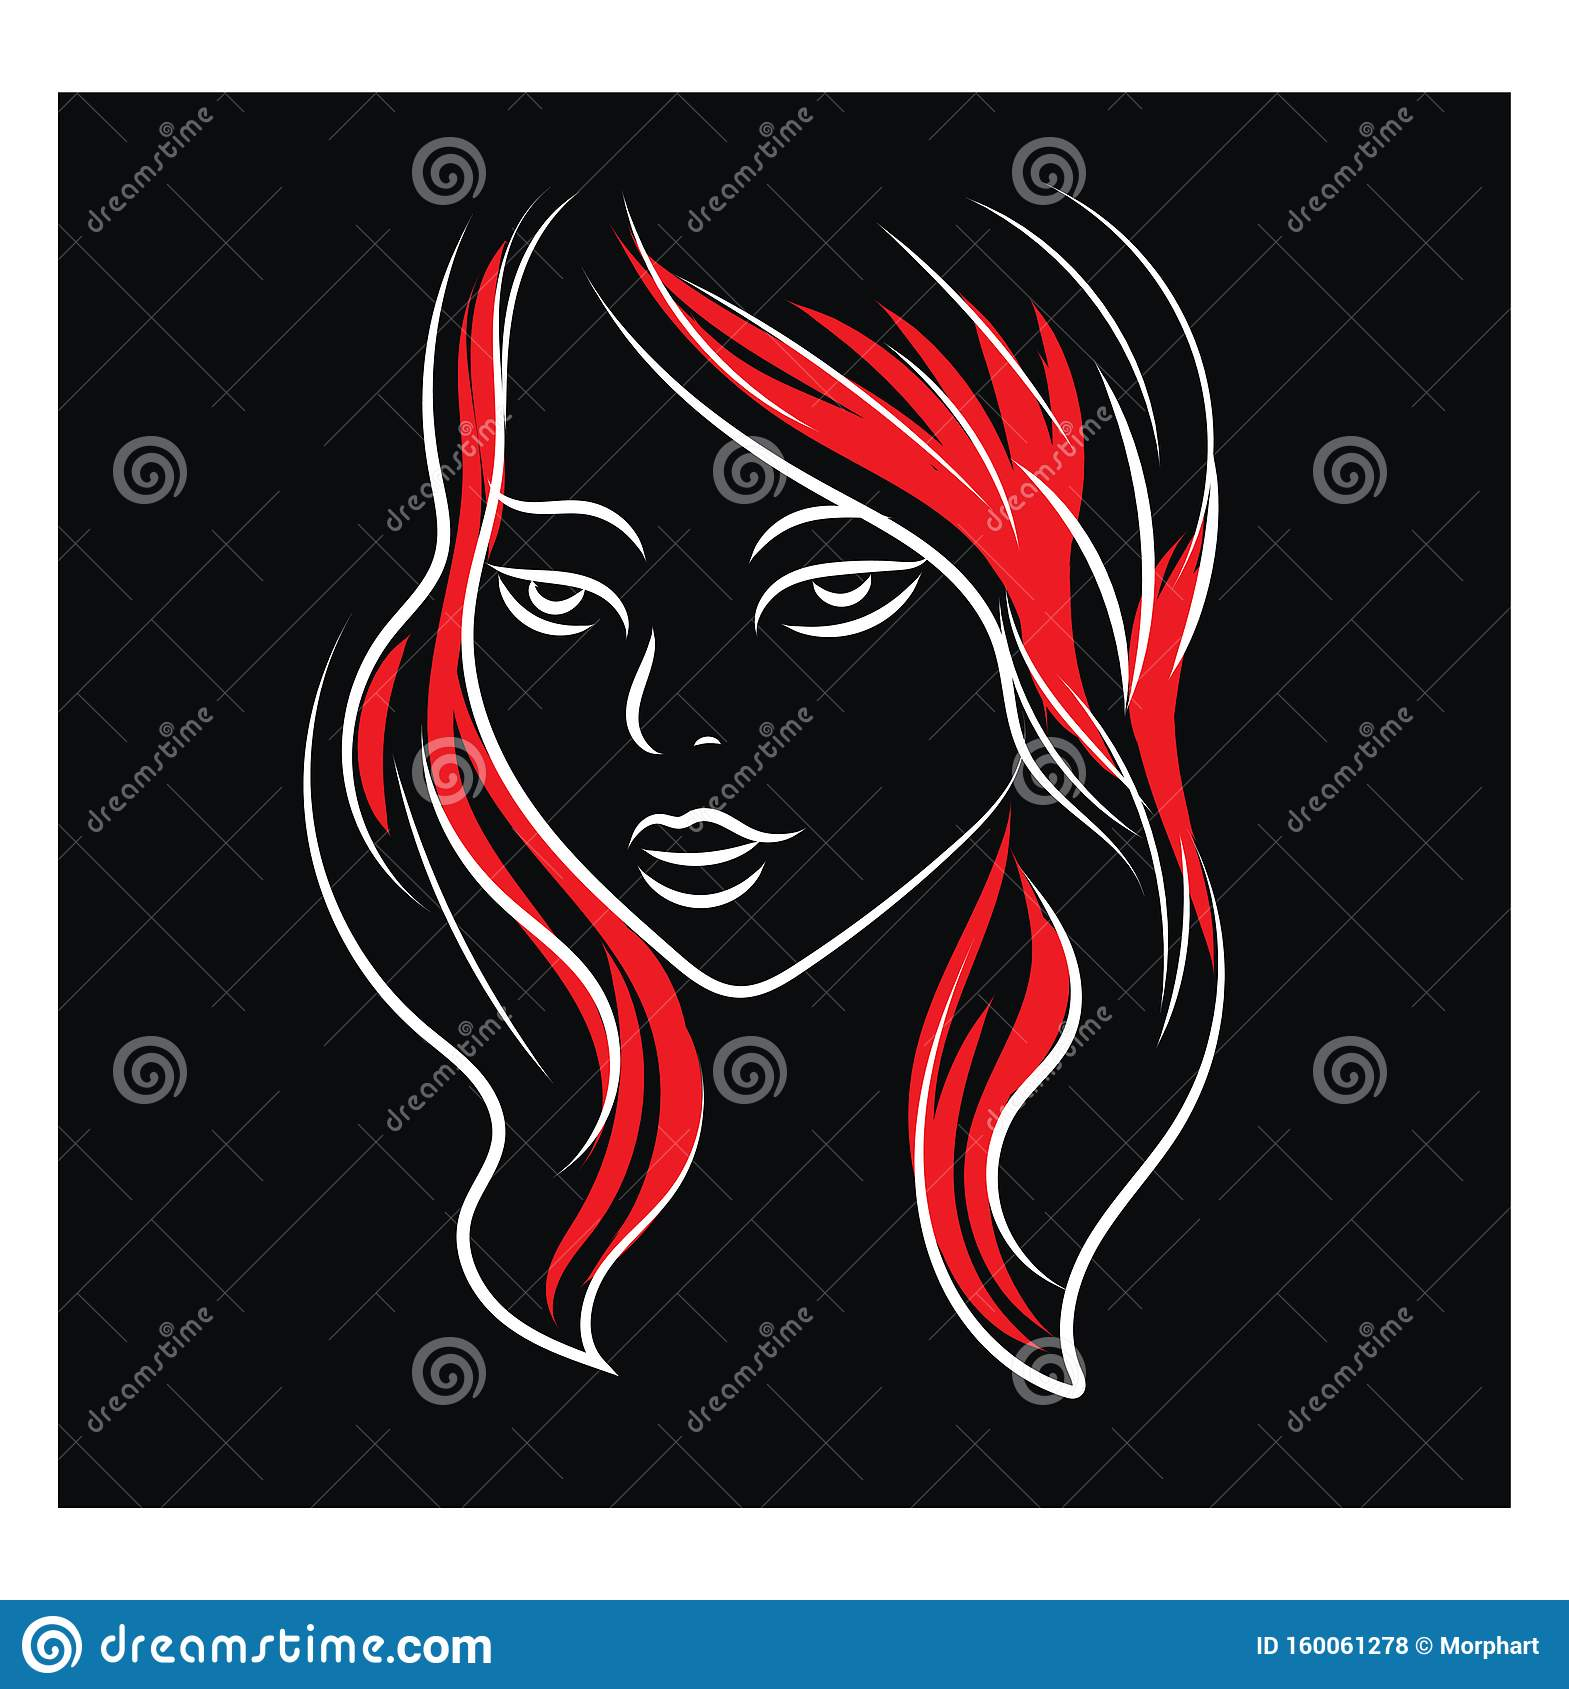 Simple Black Red And White Portrait Sketch Of A Girl Vector Illustration On Black Background With Ehite Frame Stock Vector Illustration Of Creative Graphic 160061278